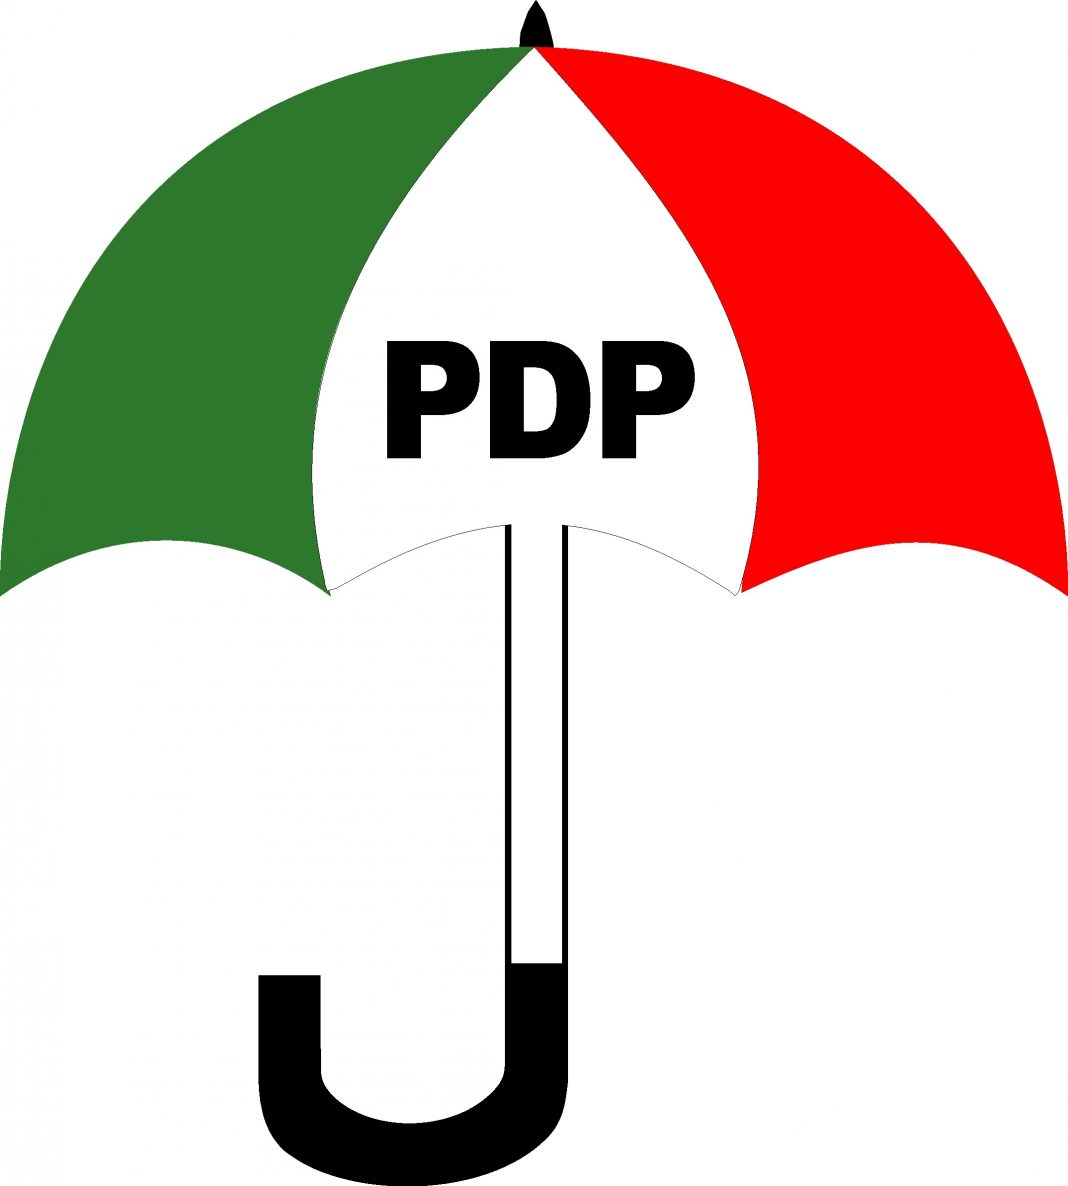 pdp governors' forum